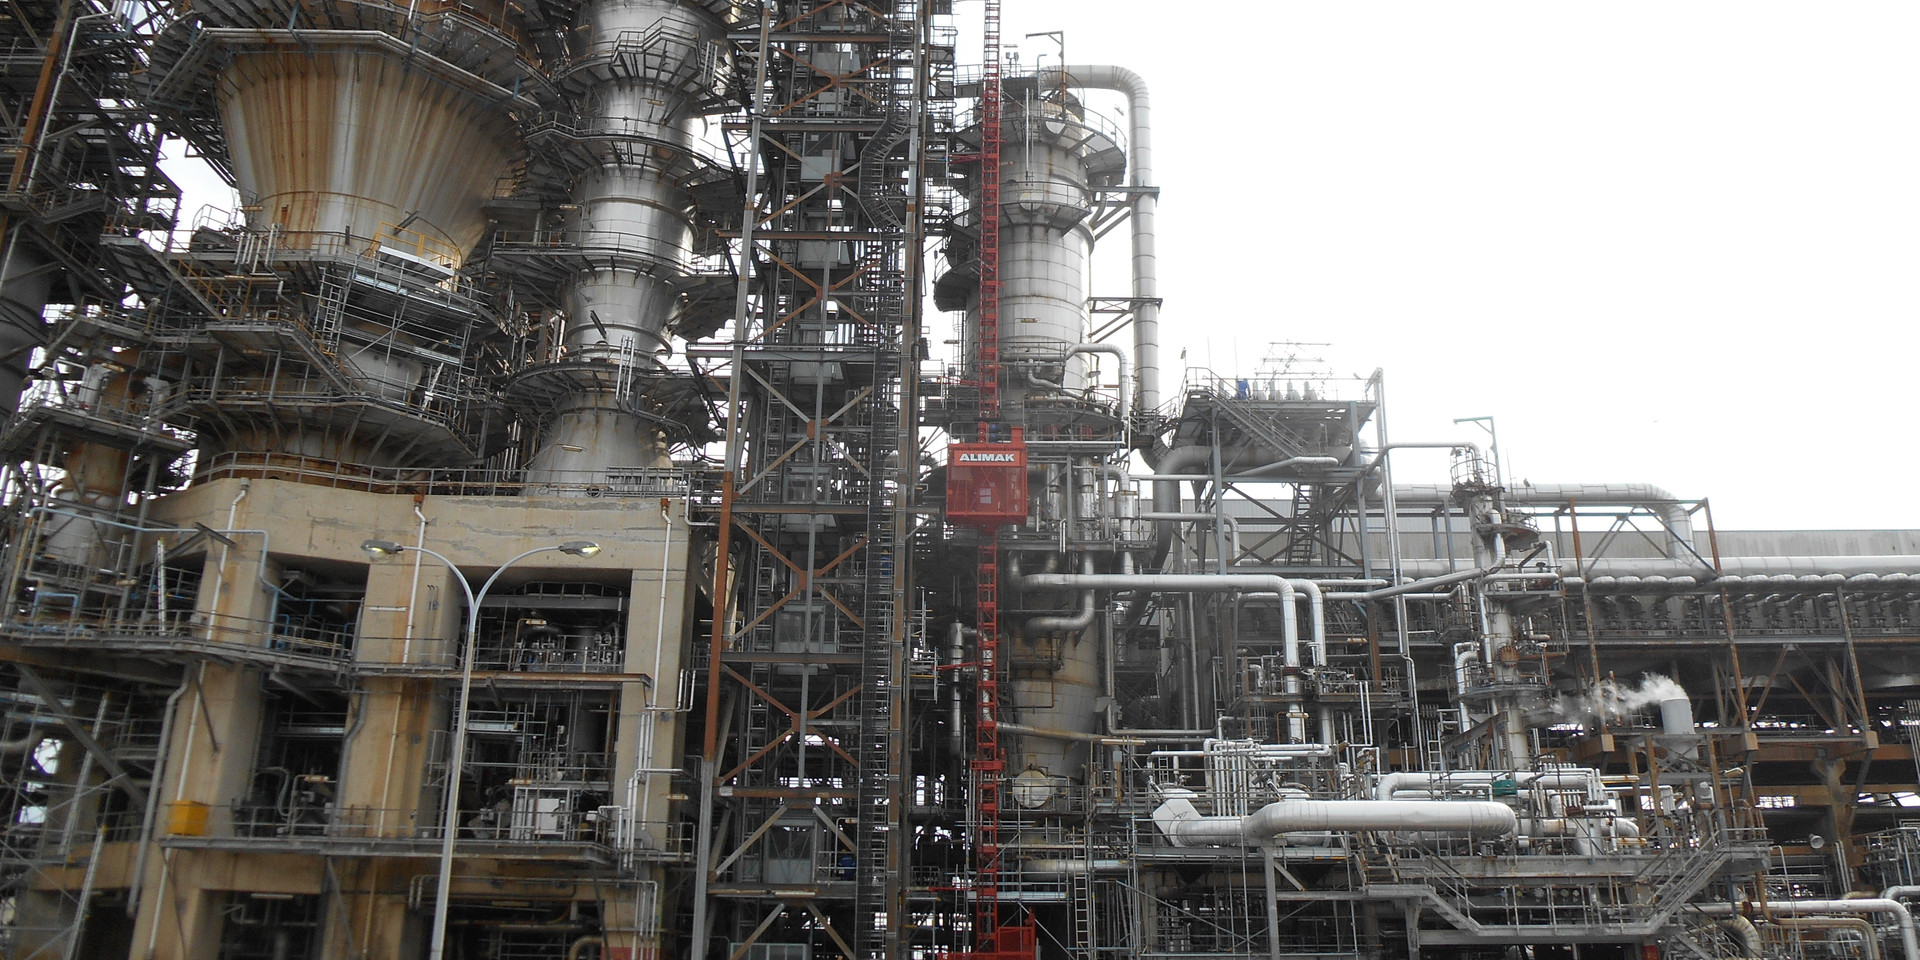 Passenger Hoist @ Oil & Gas Plant Turnaround